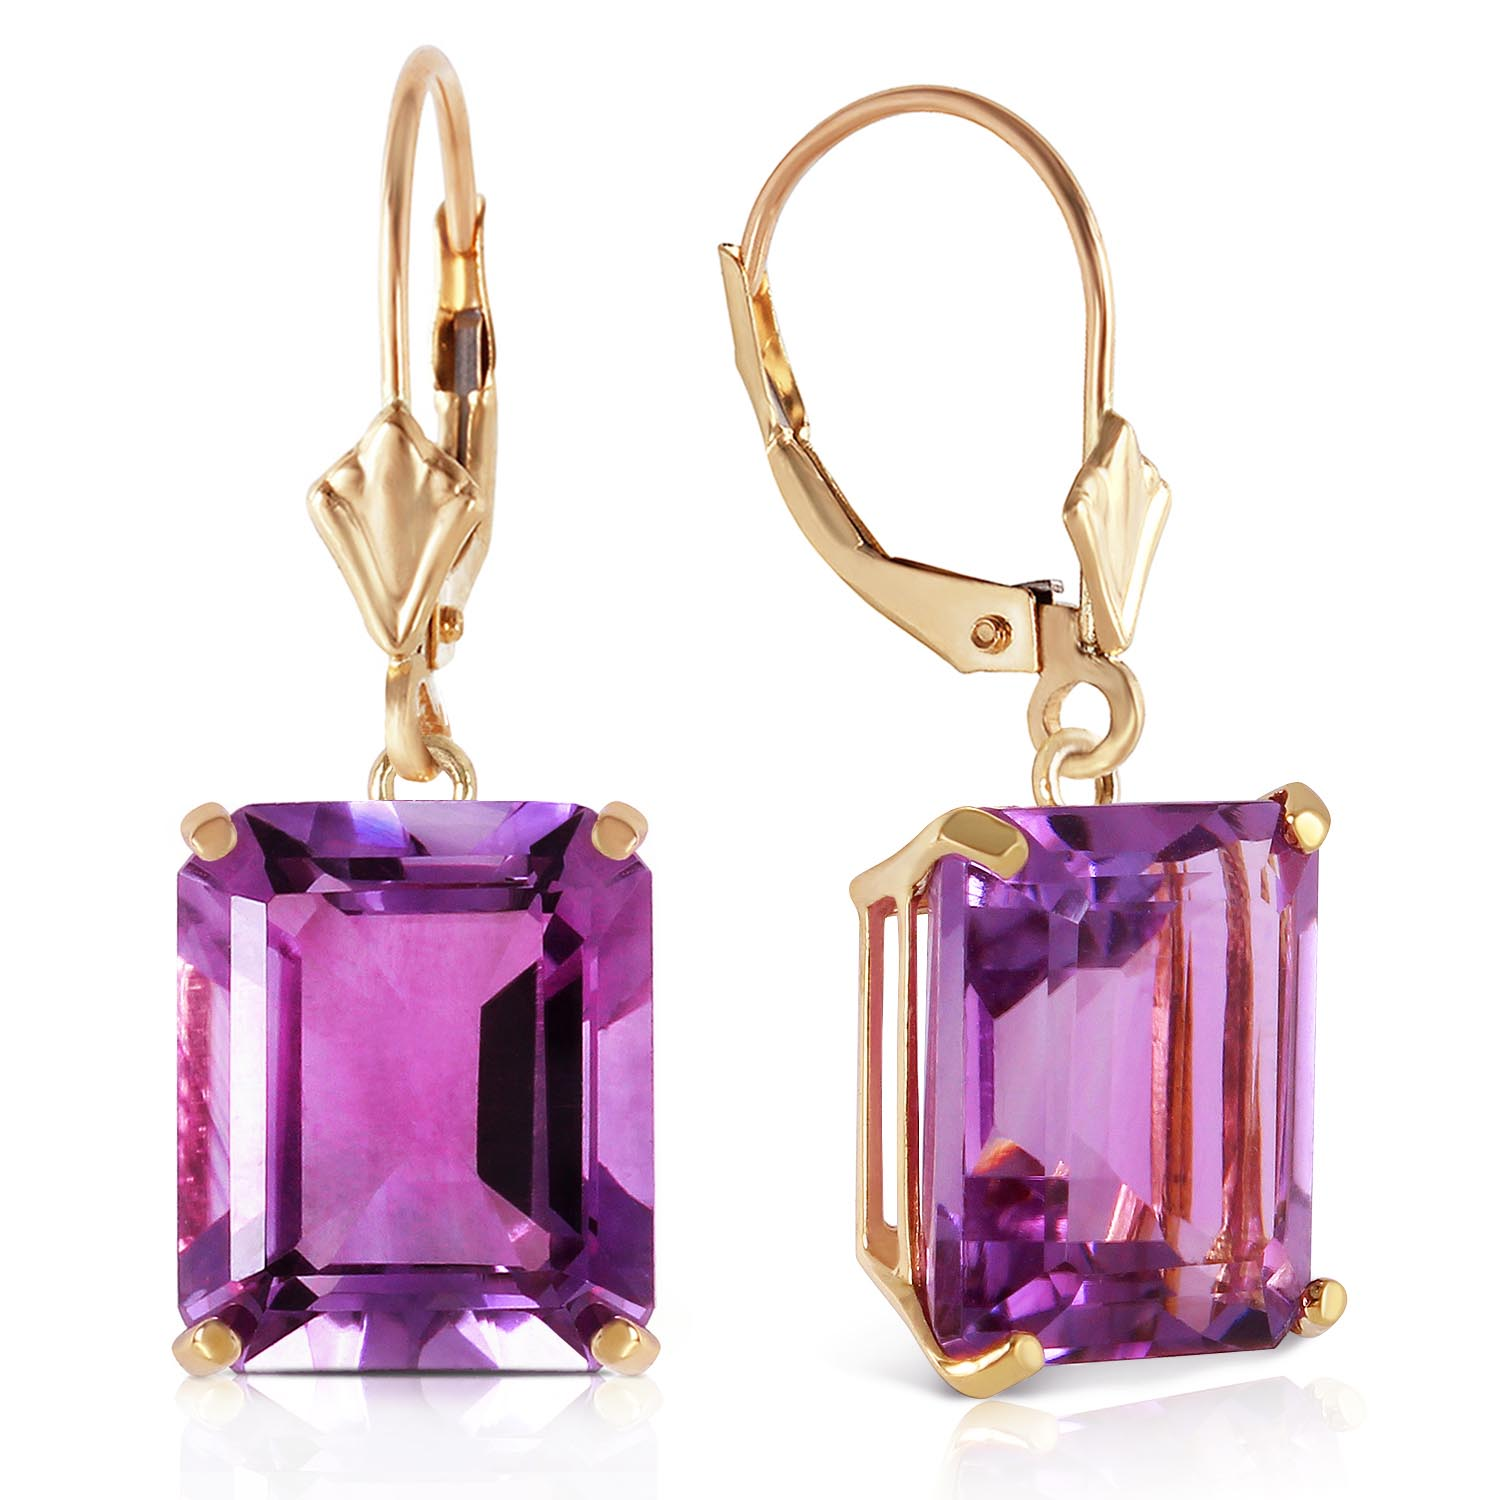 Amethyst Drop Earrings 13.0ctw in 14K Gold